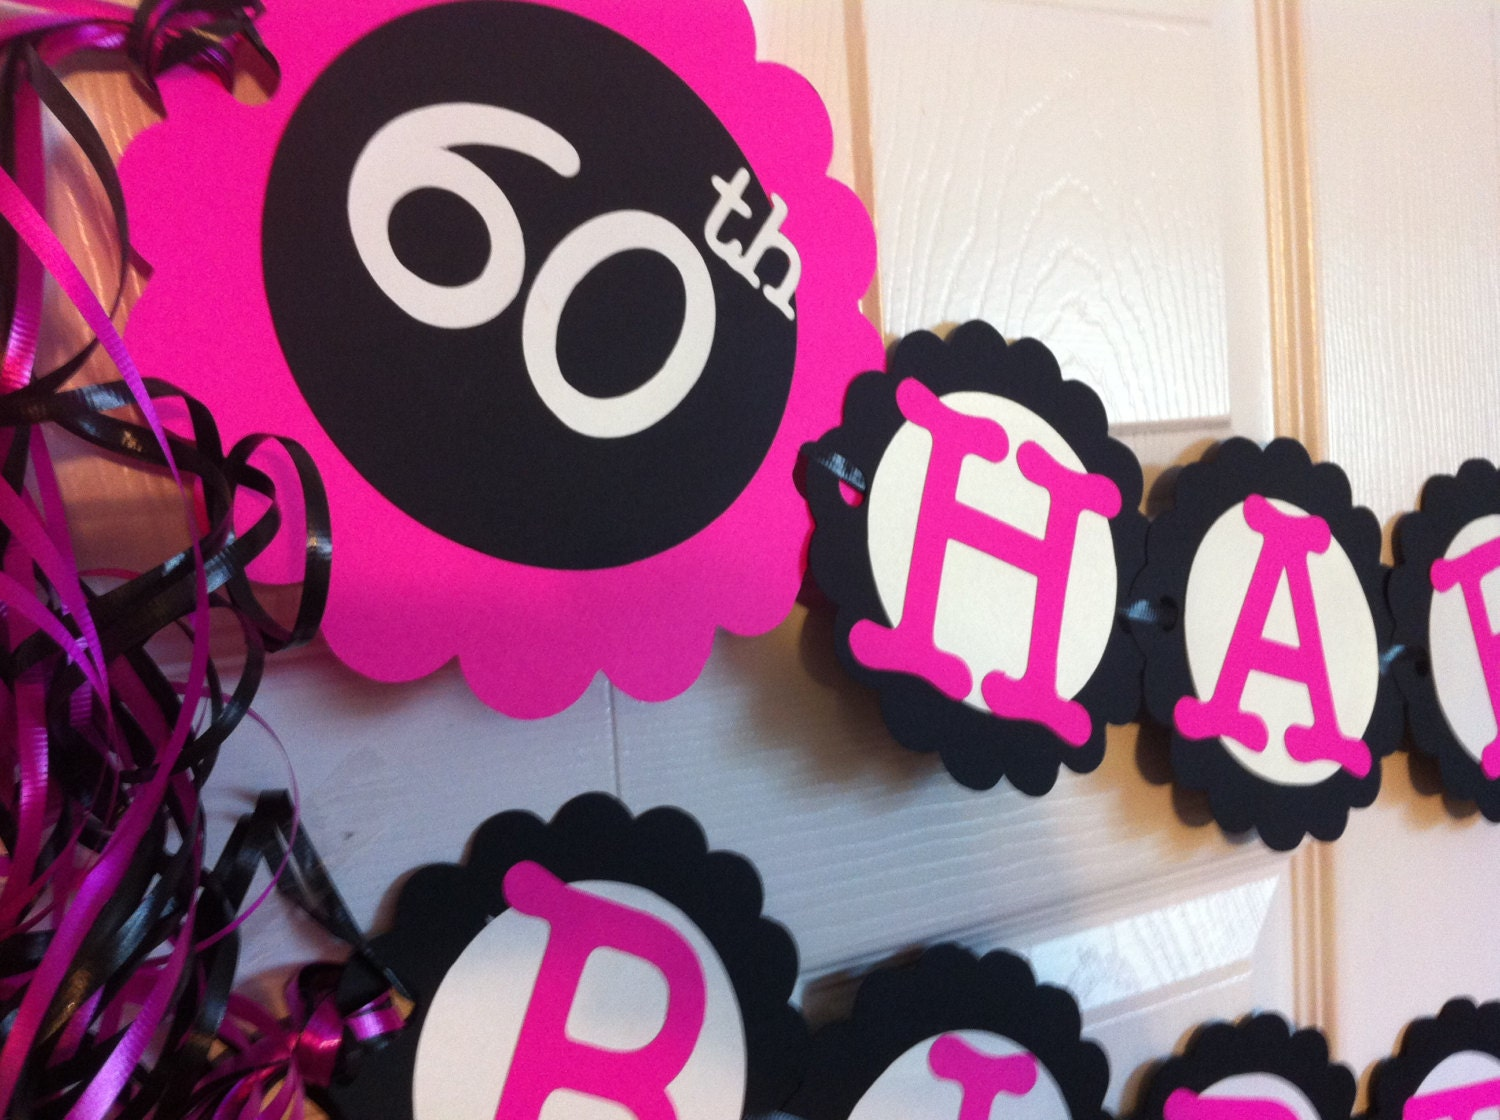 60th birthday decorations personalization available for Decoration 60th birthday party